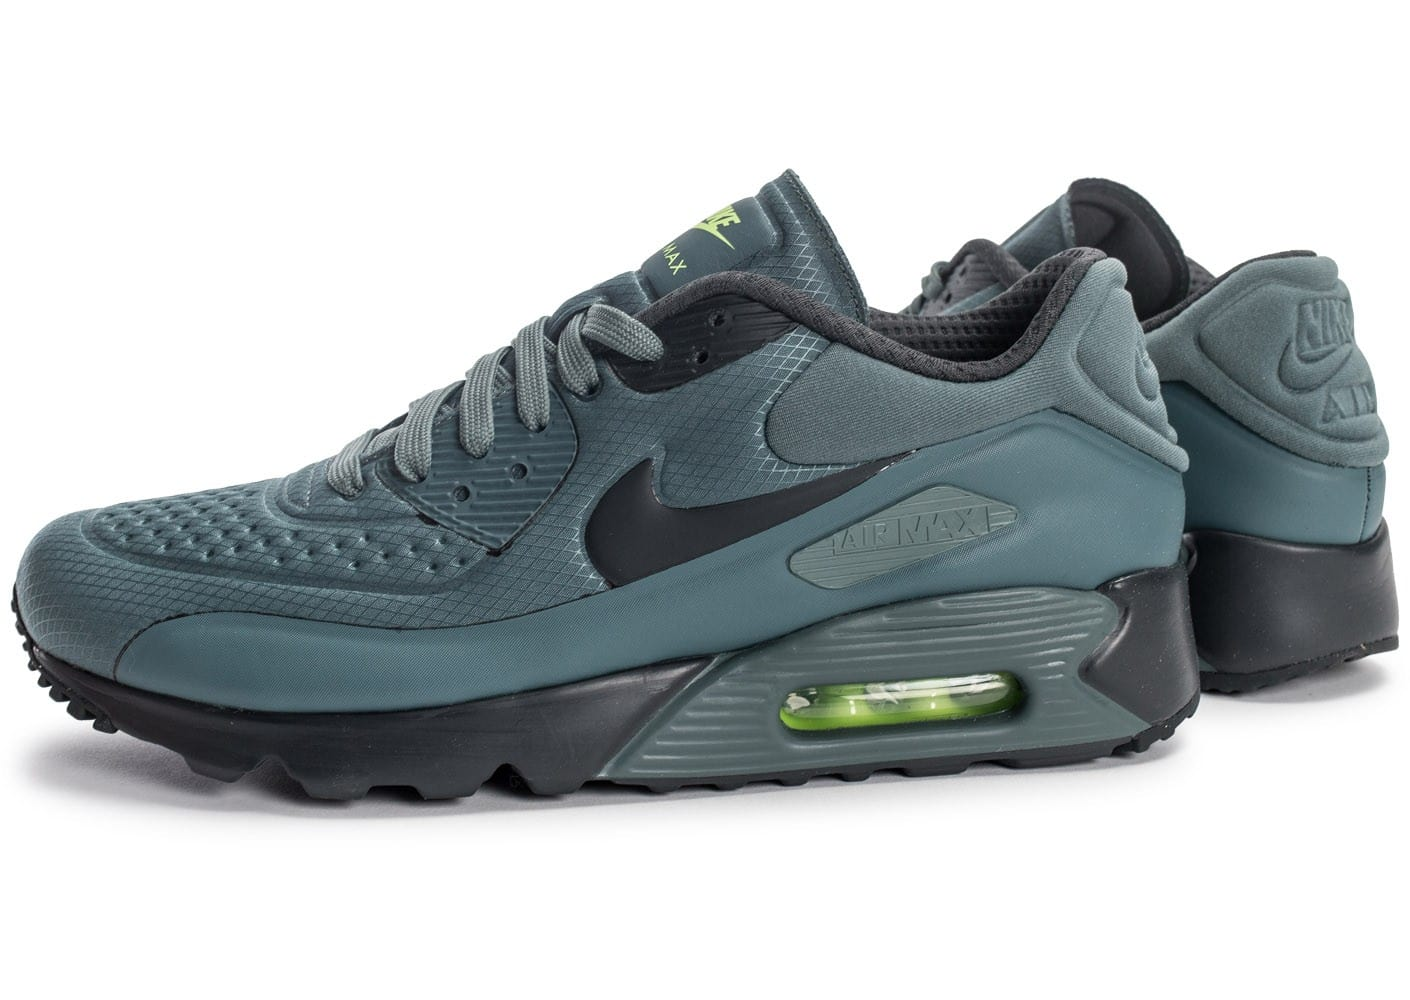 best loved 2f48f 00f74 Cliquez pour zoomer Chaussures Nike Air Max 90 Ultra Se Hasta Green vue  extérieure ...